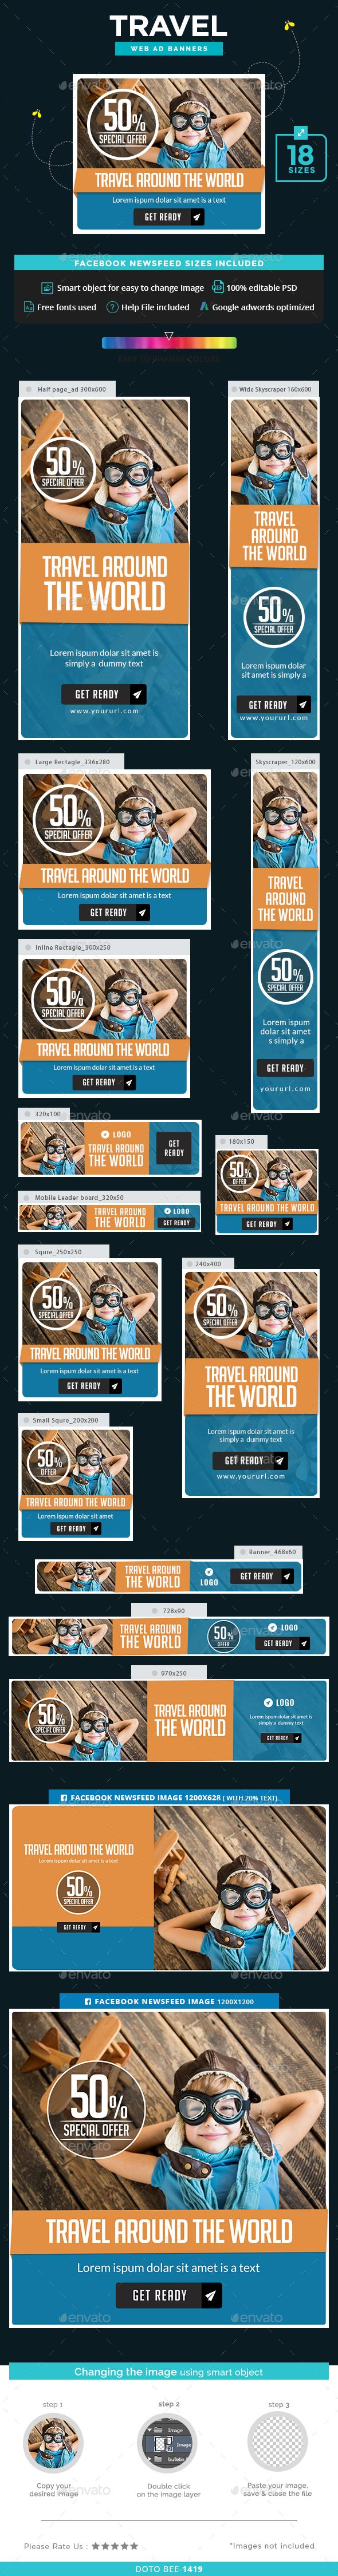 Travel Web Banners Template PSD. Download here: http://graphicriver.net/item/travel-banners/16229827?ref=ksioks